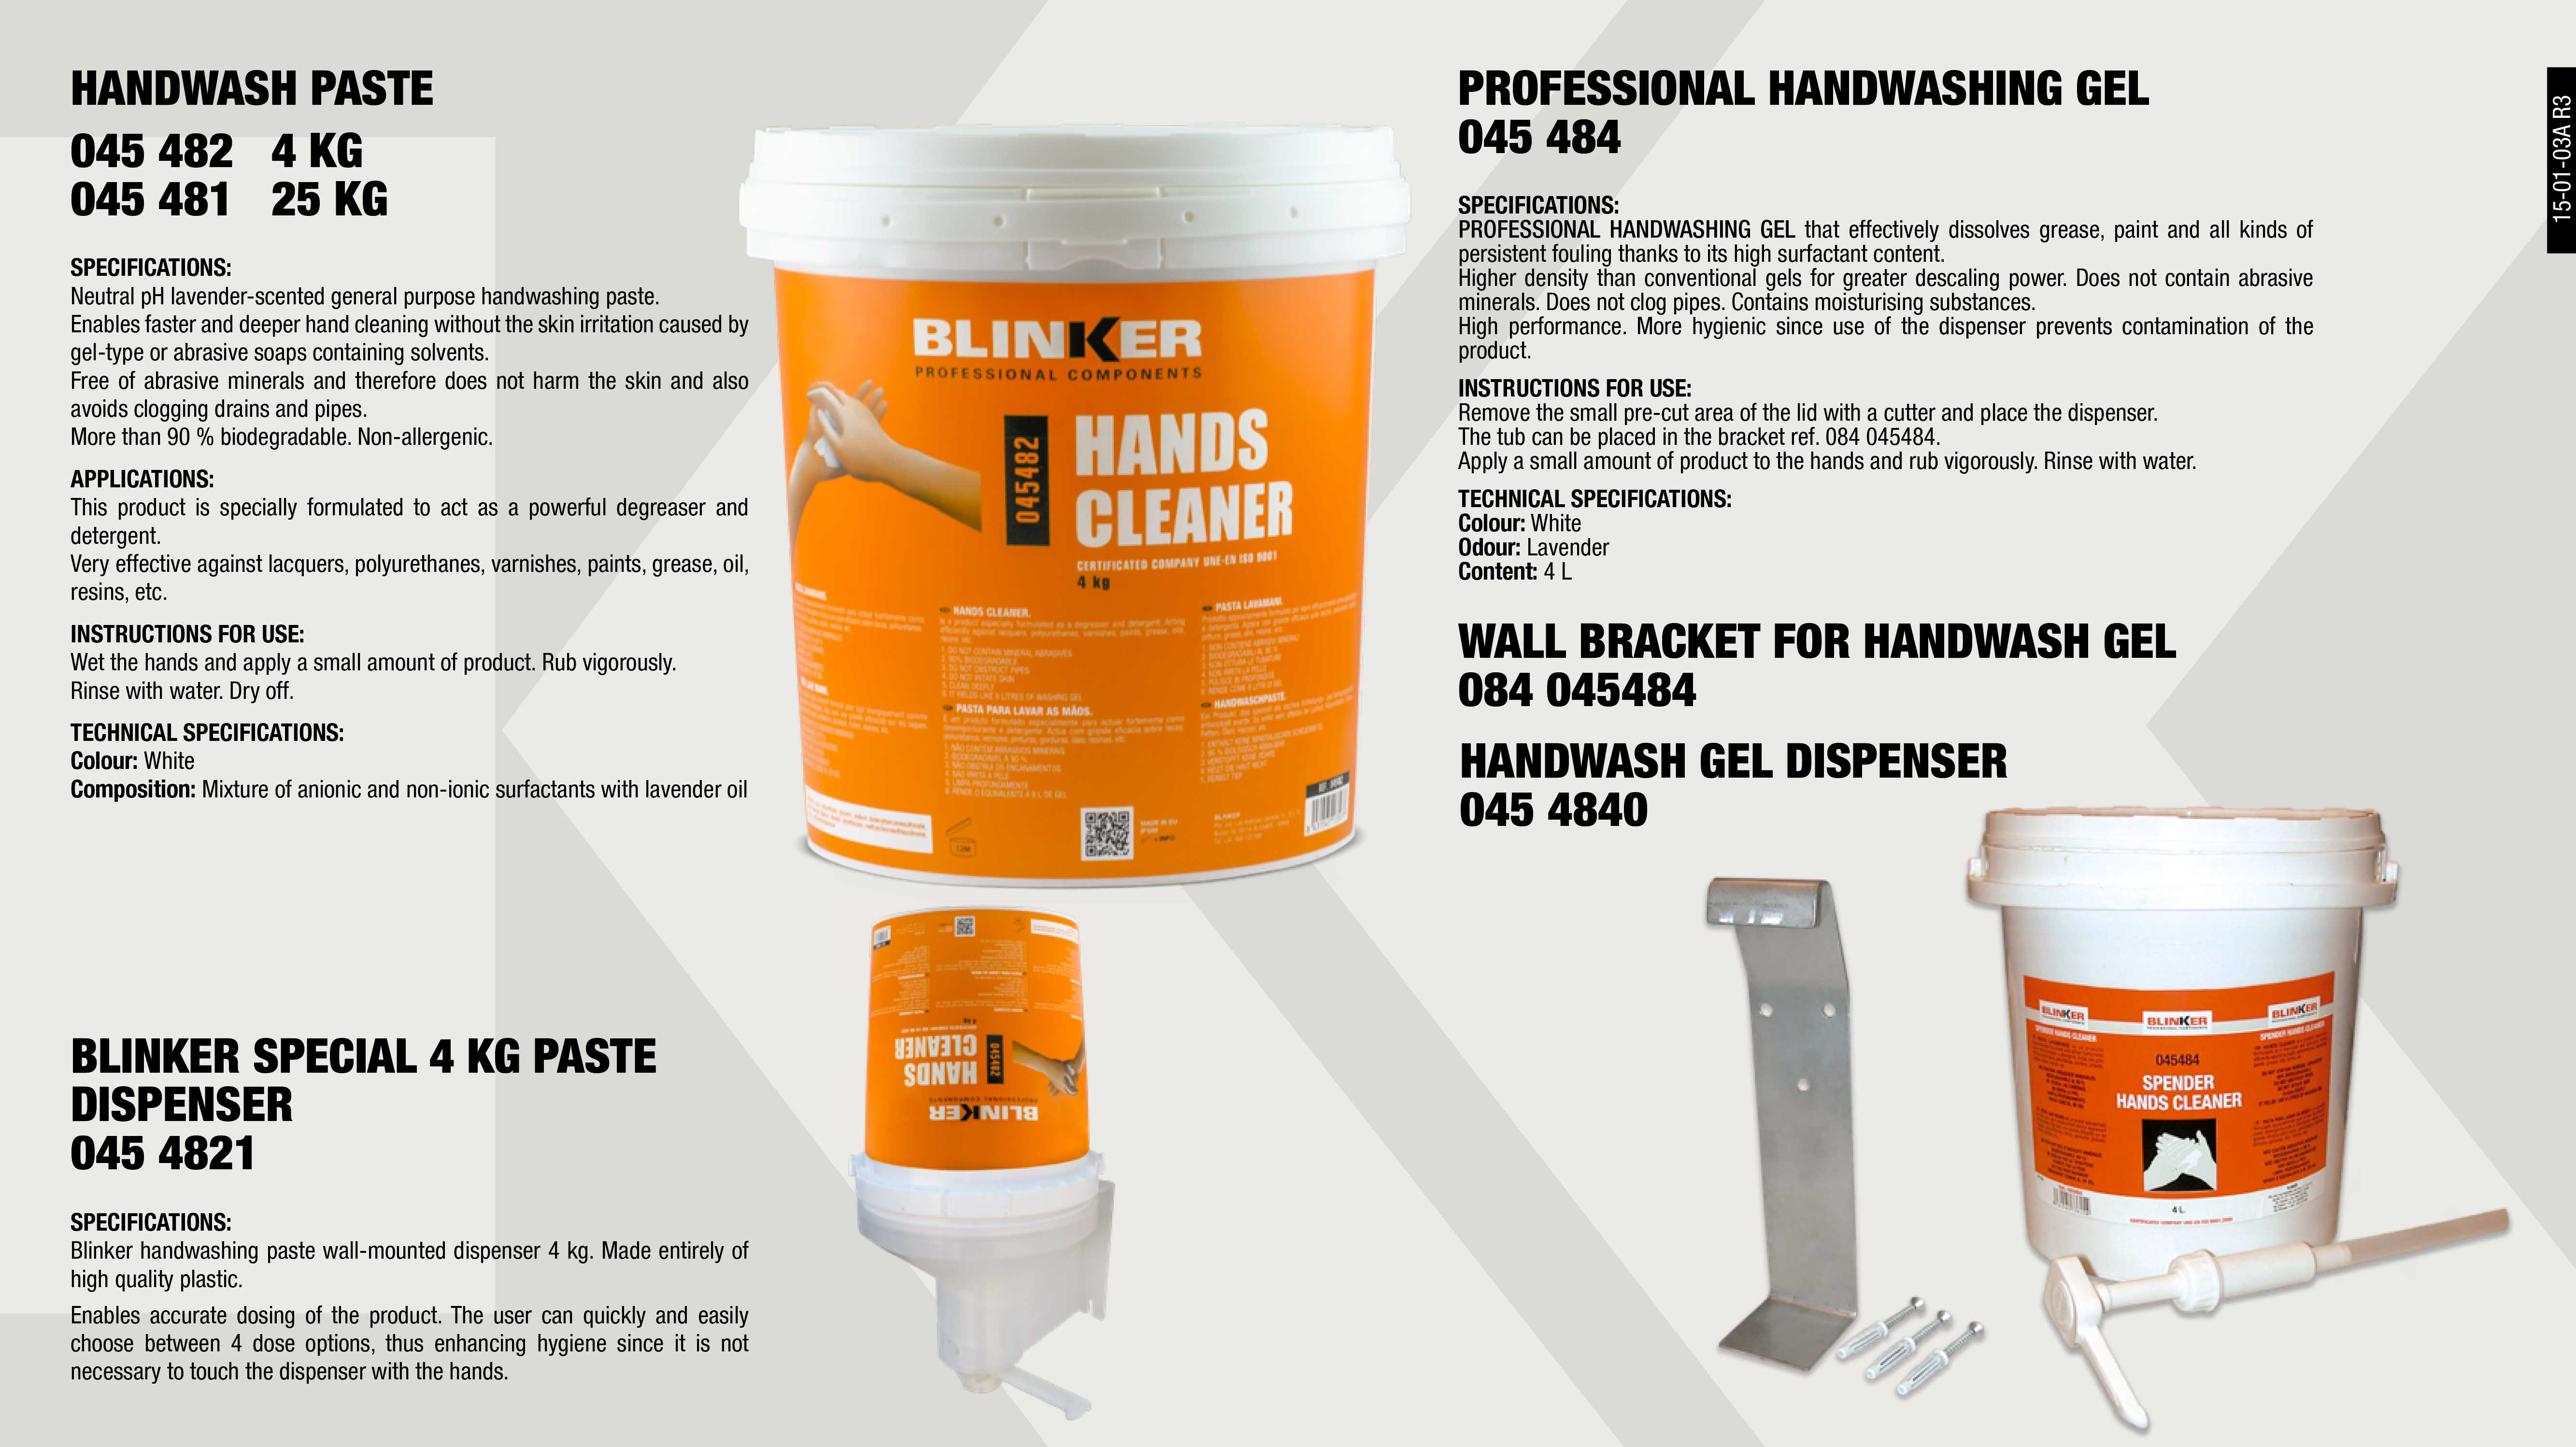 HAND CLEANER DINPENSER                                      ,  									WALL MOUNT FOR GEL SINK 4KG                                 ,  									HAND CLEANER GEL BLINKER 4KG                                ,  									SPECIAL HAND CLEANER PASTE BLINKER 25KG                     ,  									SPECIAL HAND CLEANER PASTE BLINKER 4KG                      ,  									BLINKER SPECIAL 4KG PASTE DISPENSER                         ,  									HANDCLEANER PASTE BLINKER 10 G                              ,